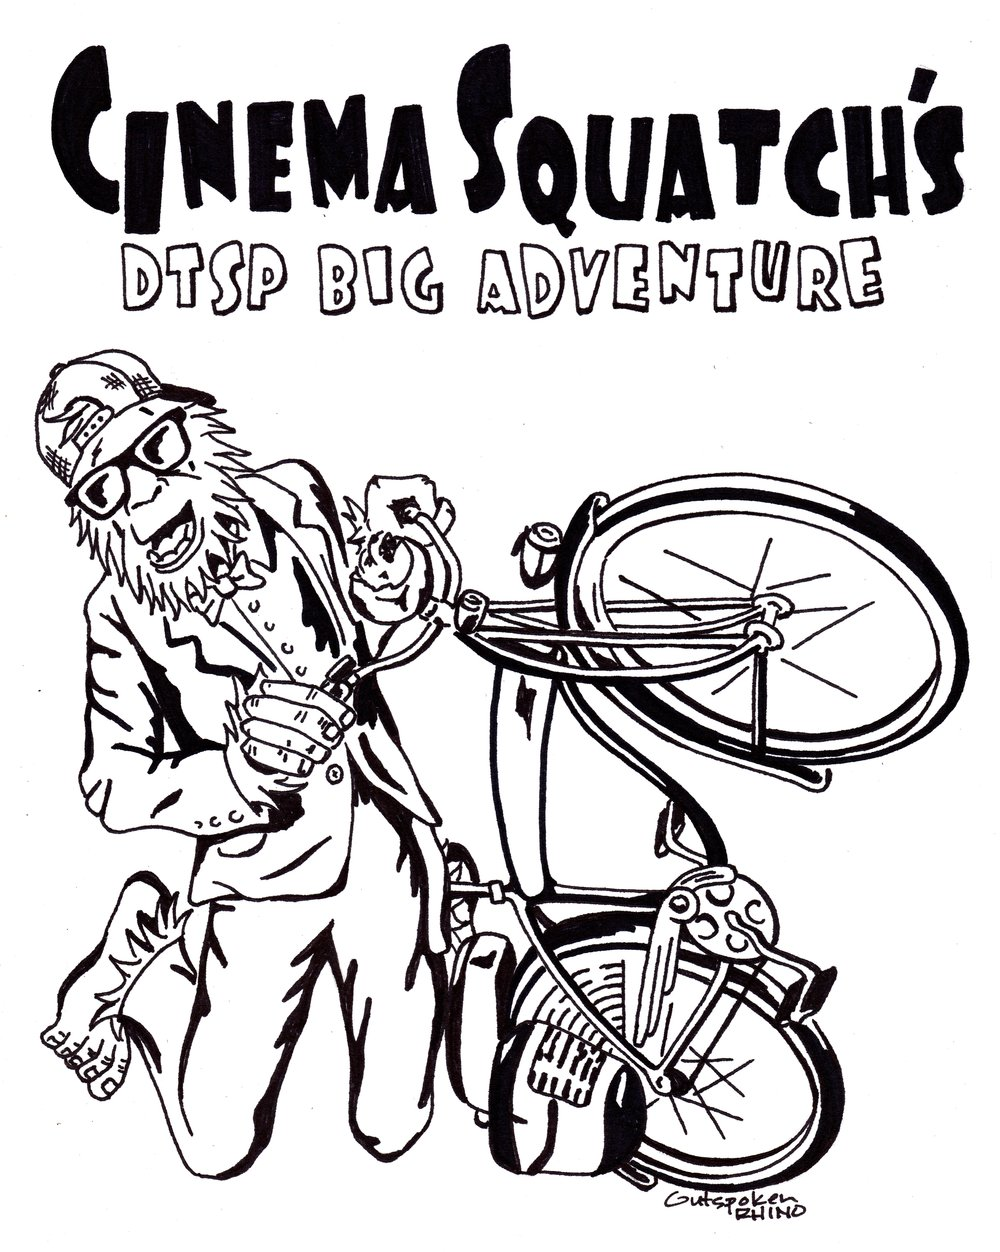 Outspoken Rhino Cinema Squatch T-shirt design Pee Wee